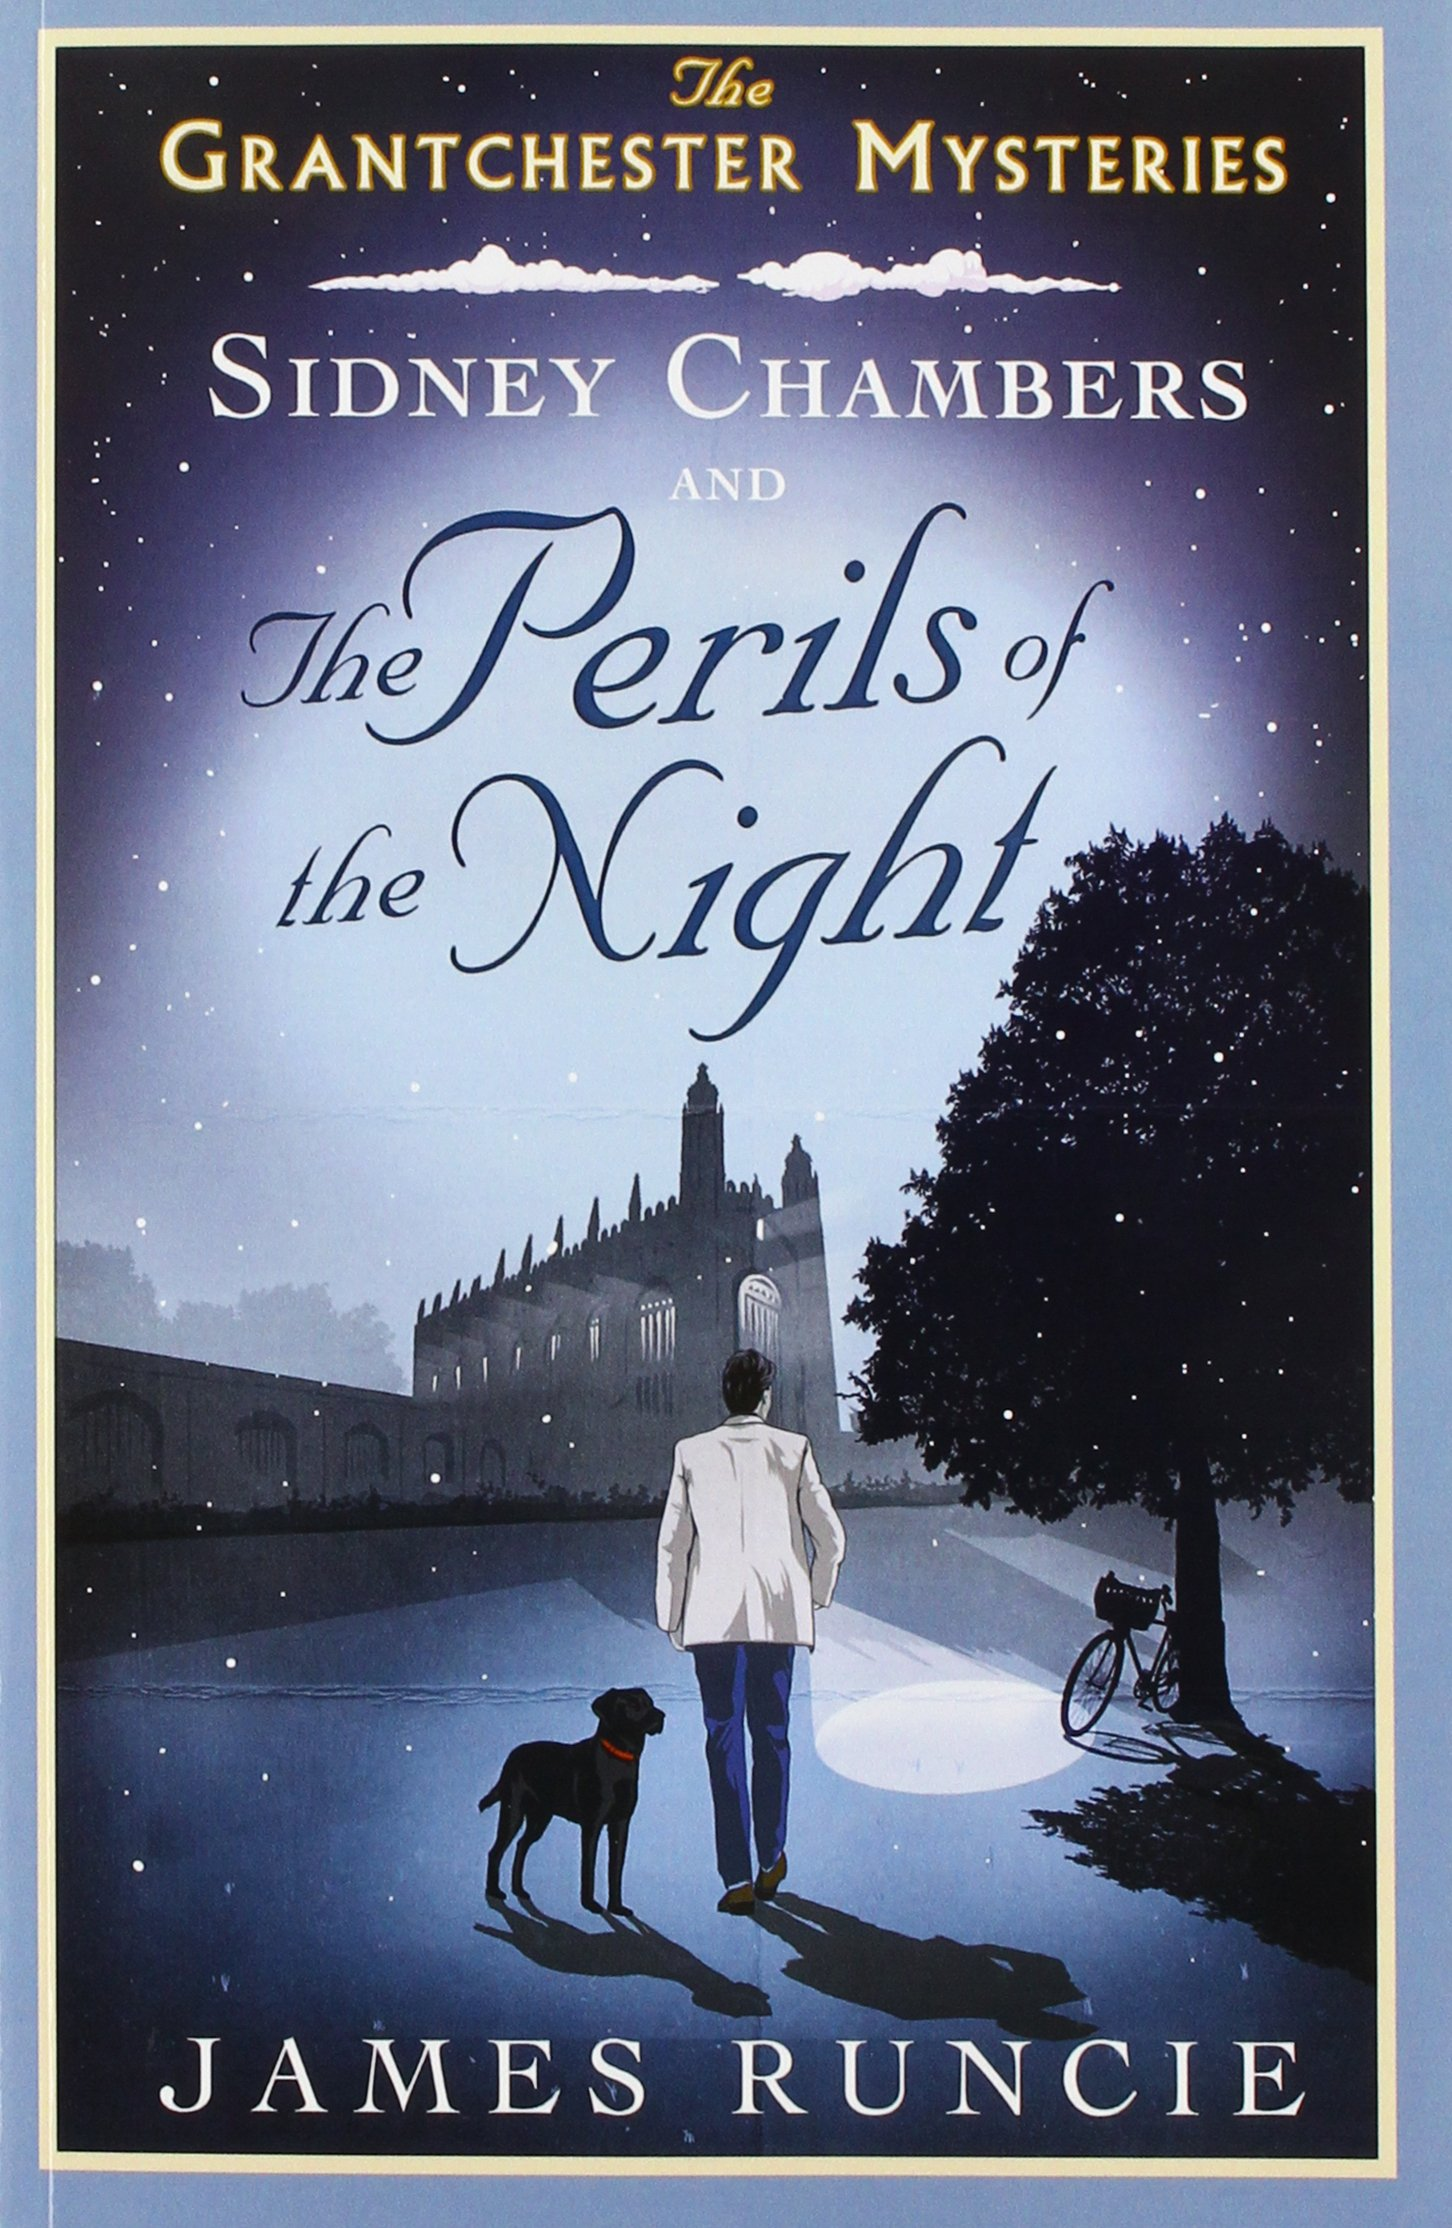 Download Sidney Chambers And The Perils Of The Night (The Grantchester Mysteries) PDF